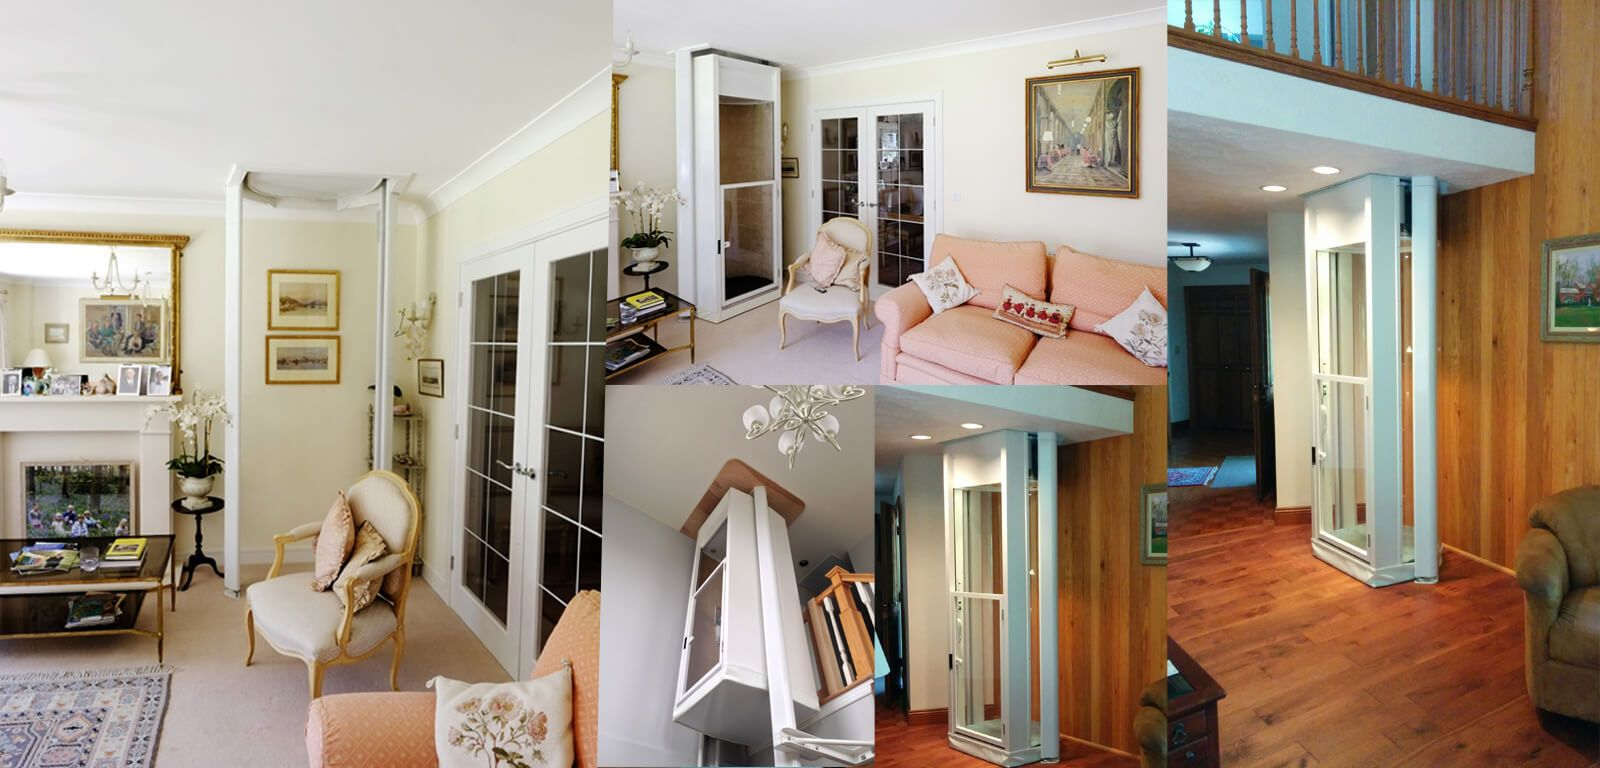 Home Elevator Company Residential Home Elevators Lifts: homes with elevators for sale